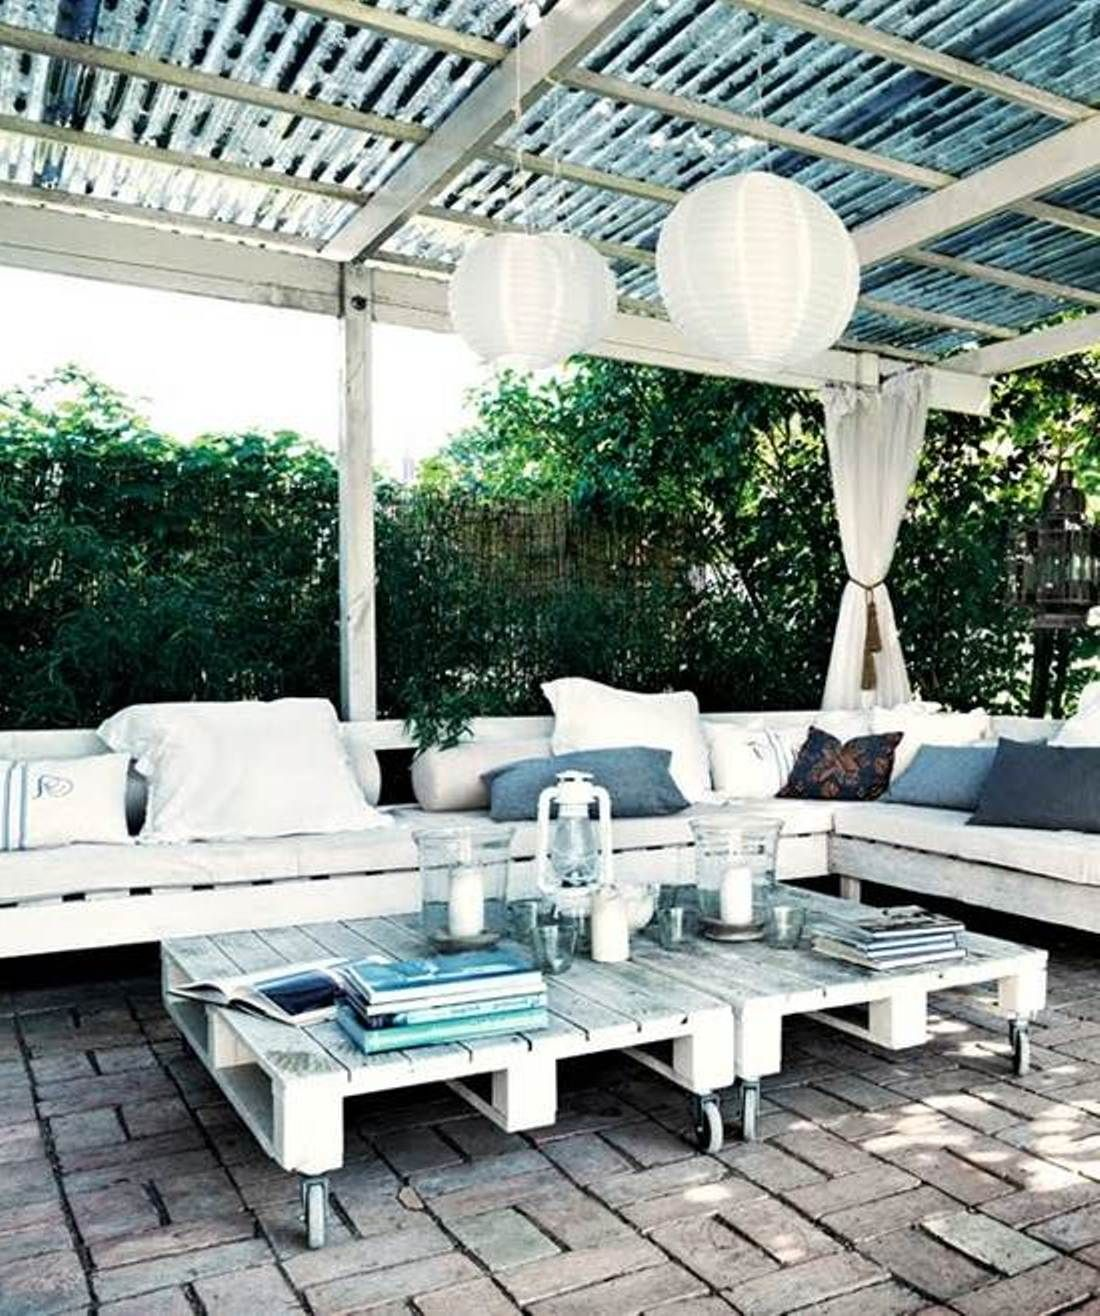 patio ideas on a budget | Plans for Patio Designs On a ... on Patio Designs On A Budget id=55212